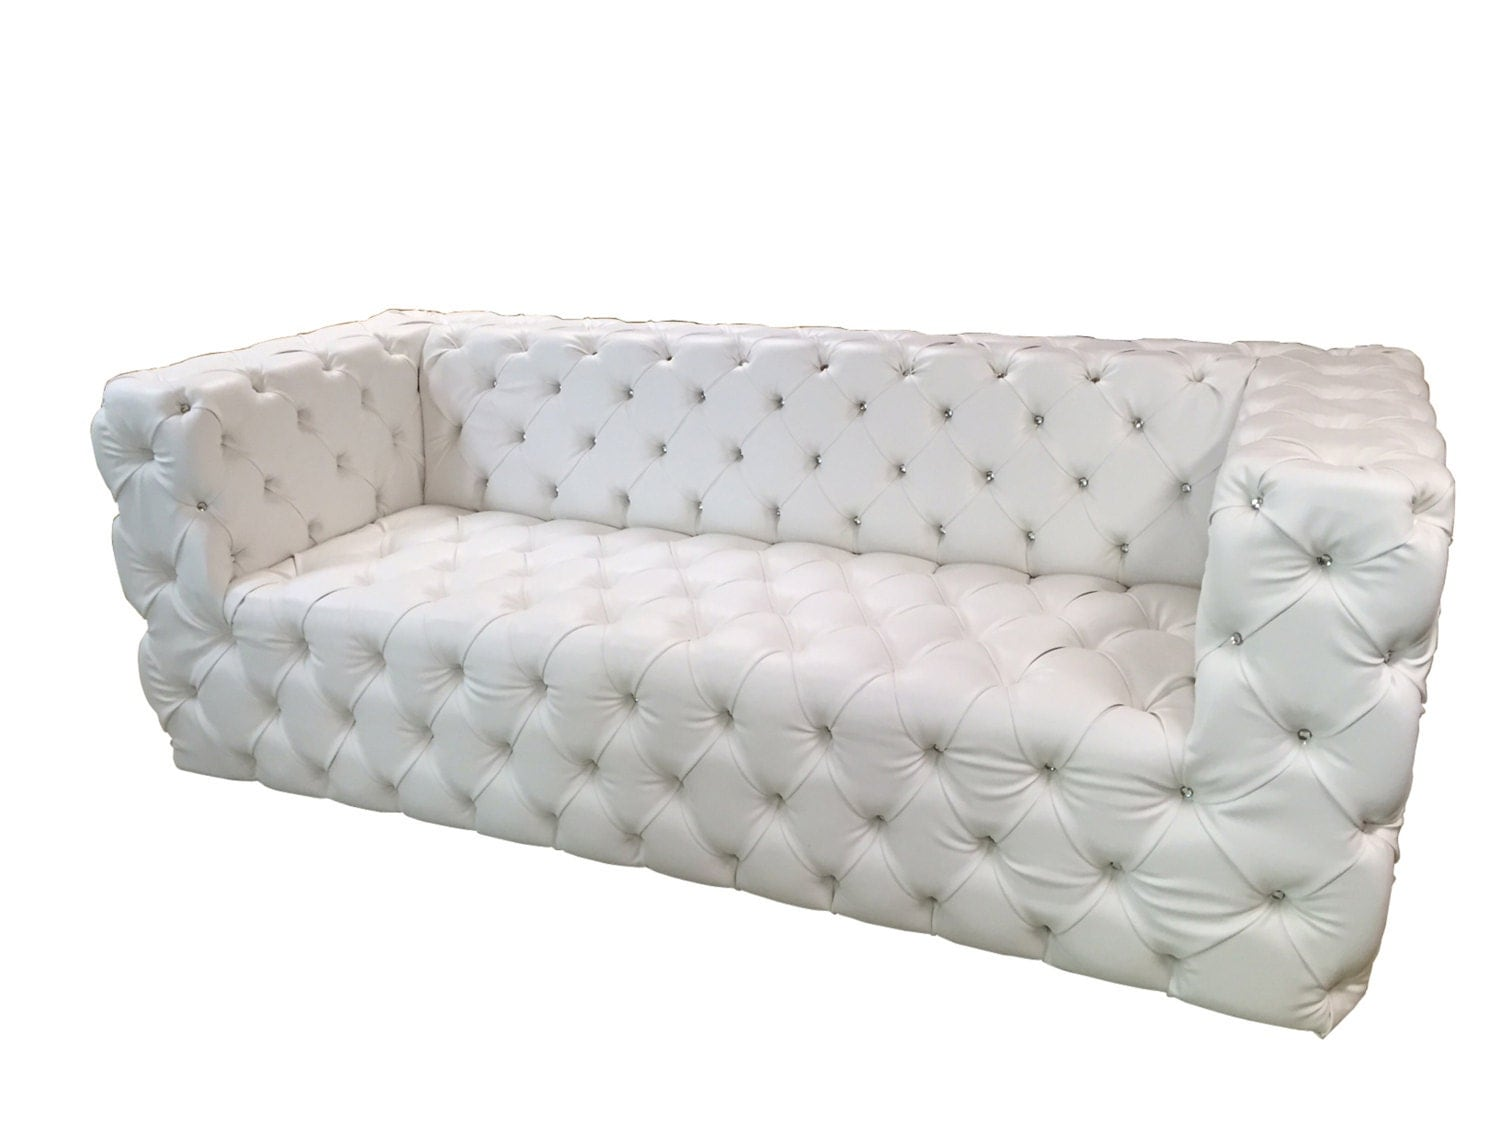 White Tufted Sofa Off White Tufted Sofa White Leather Tufted Sofa White Tufted Sectional